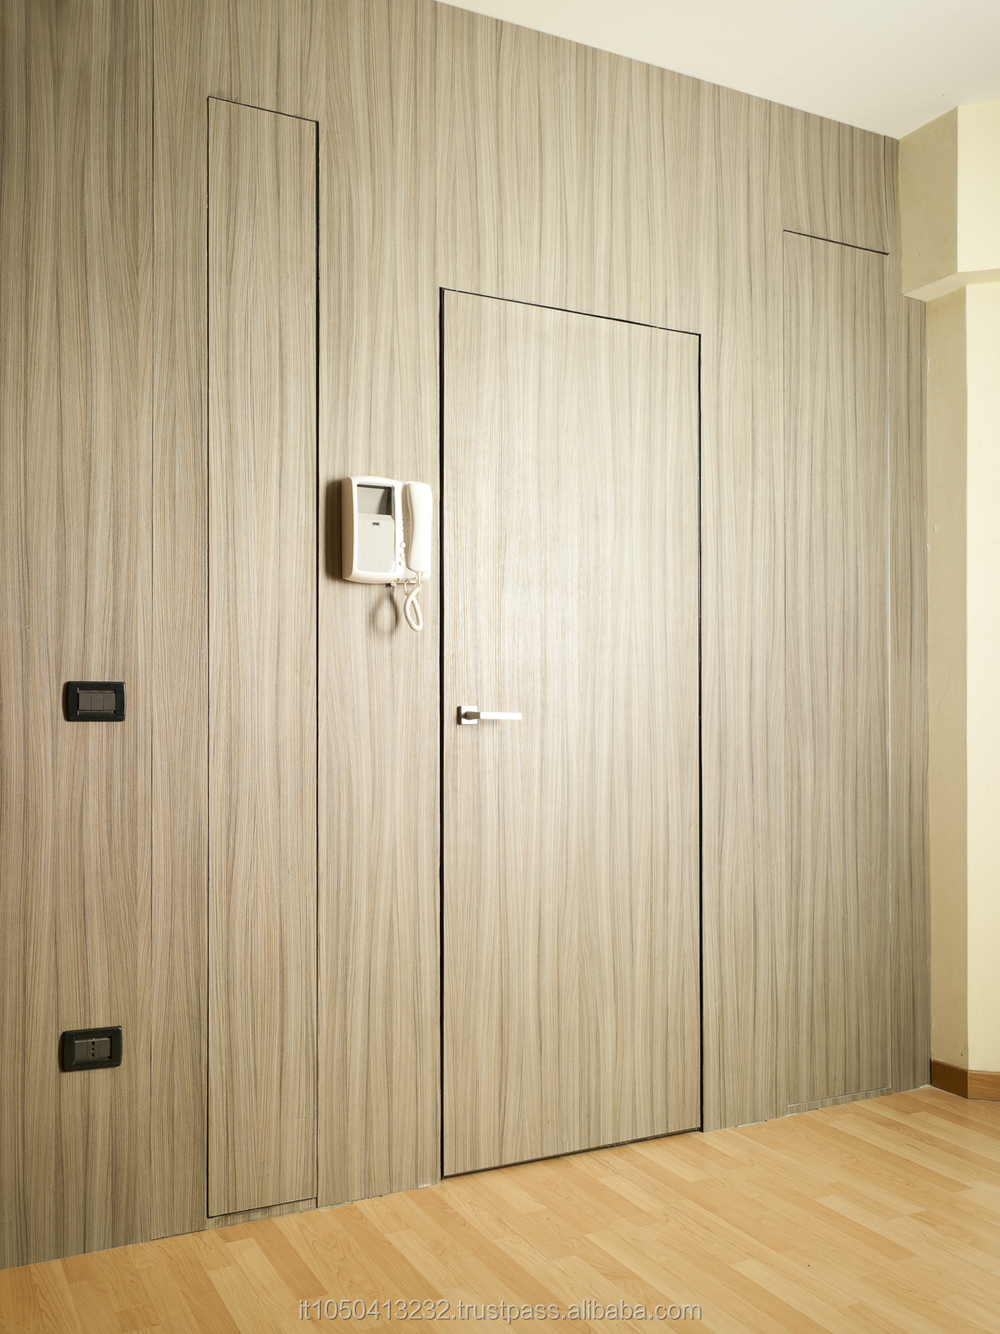 Flush to the wall doors and panels made in italy elegance for Flush interior wood doors